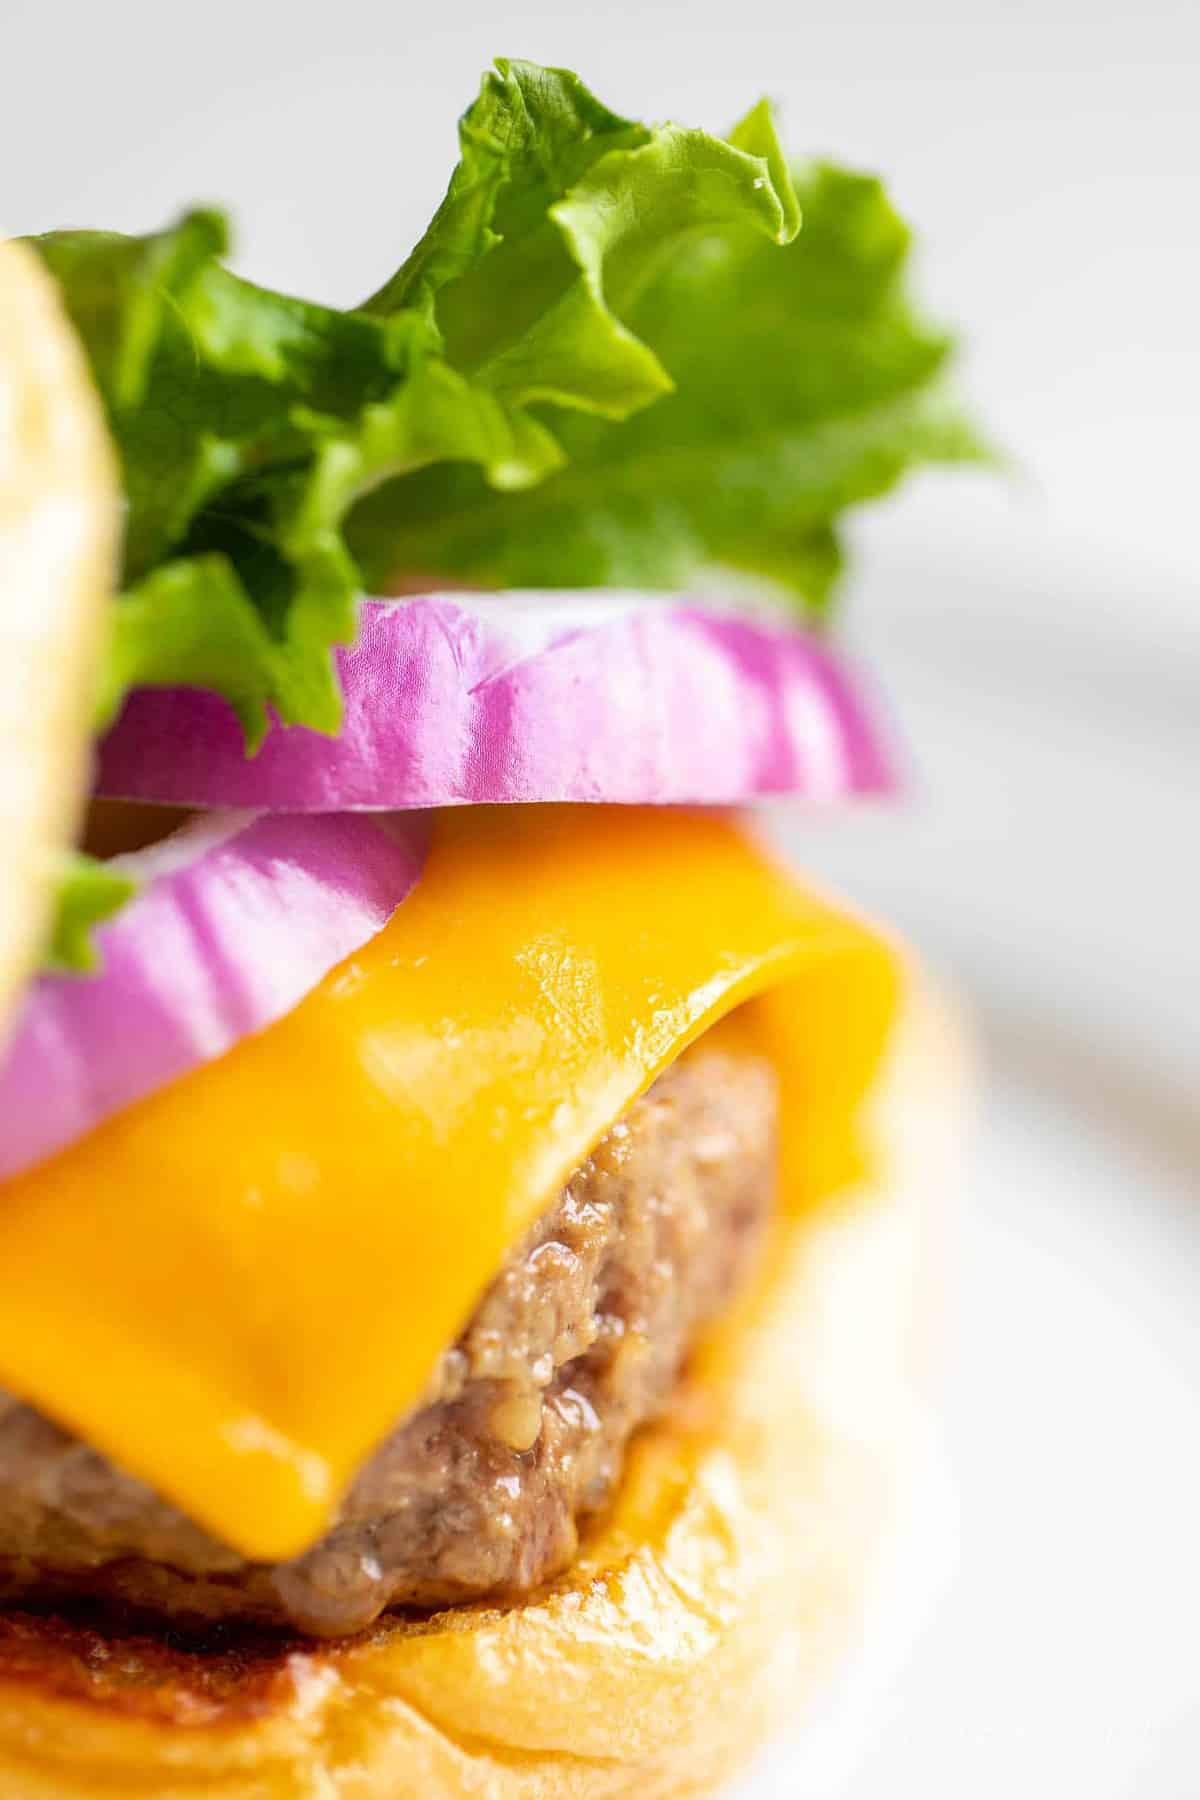 A close up shot of a cast iron burger stacked with lettuce, red onions and cheese.